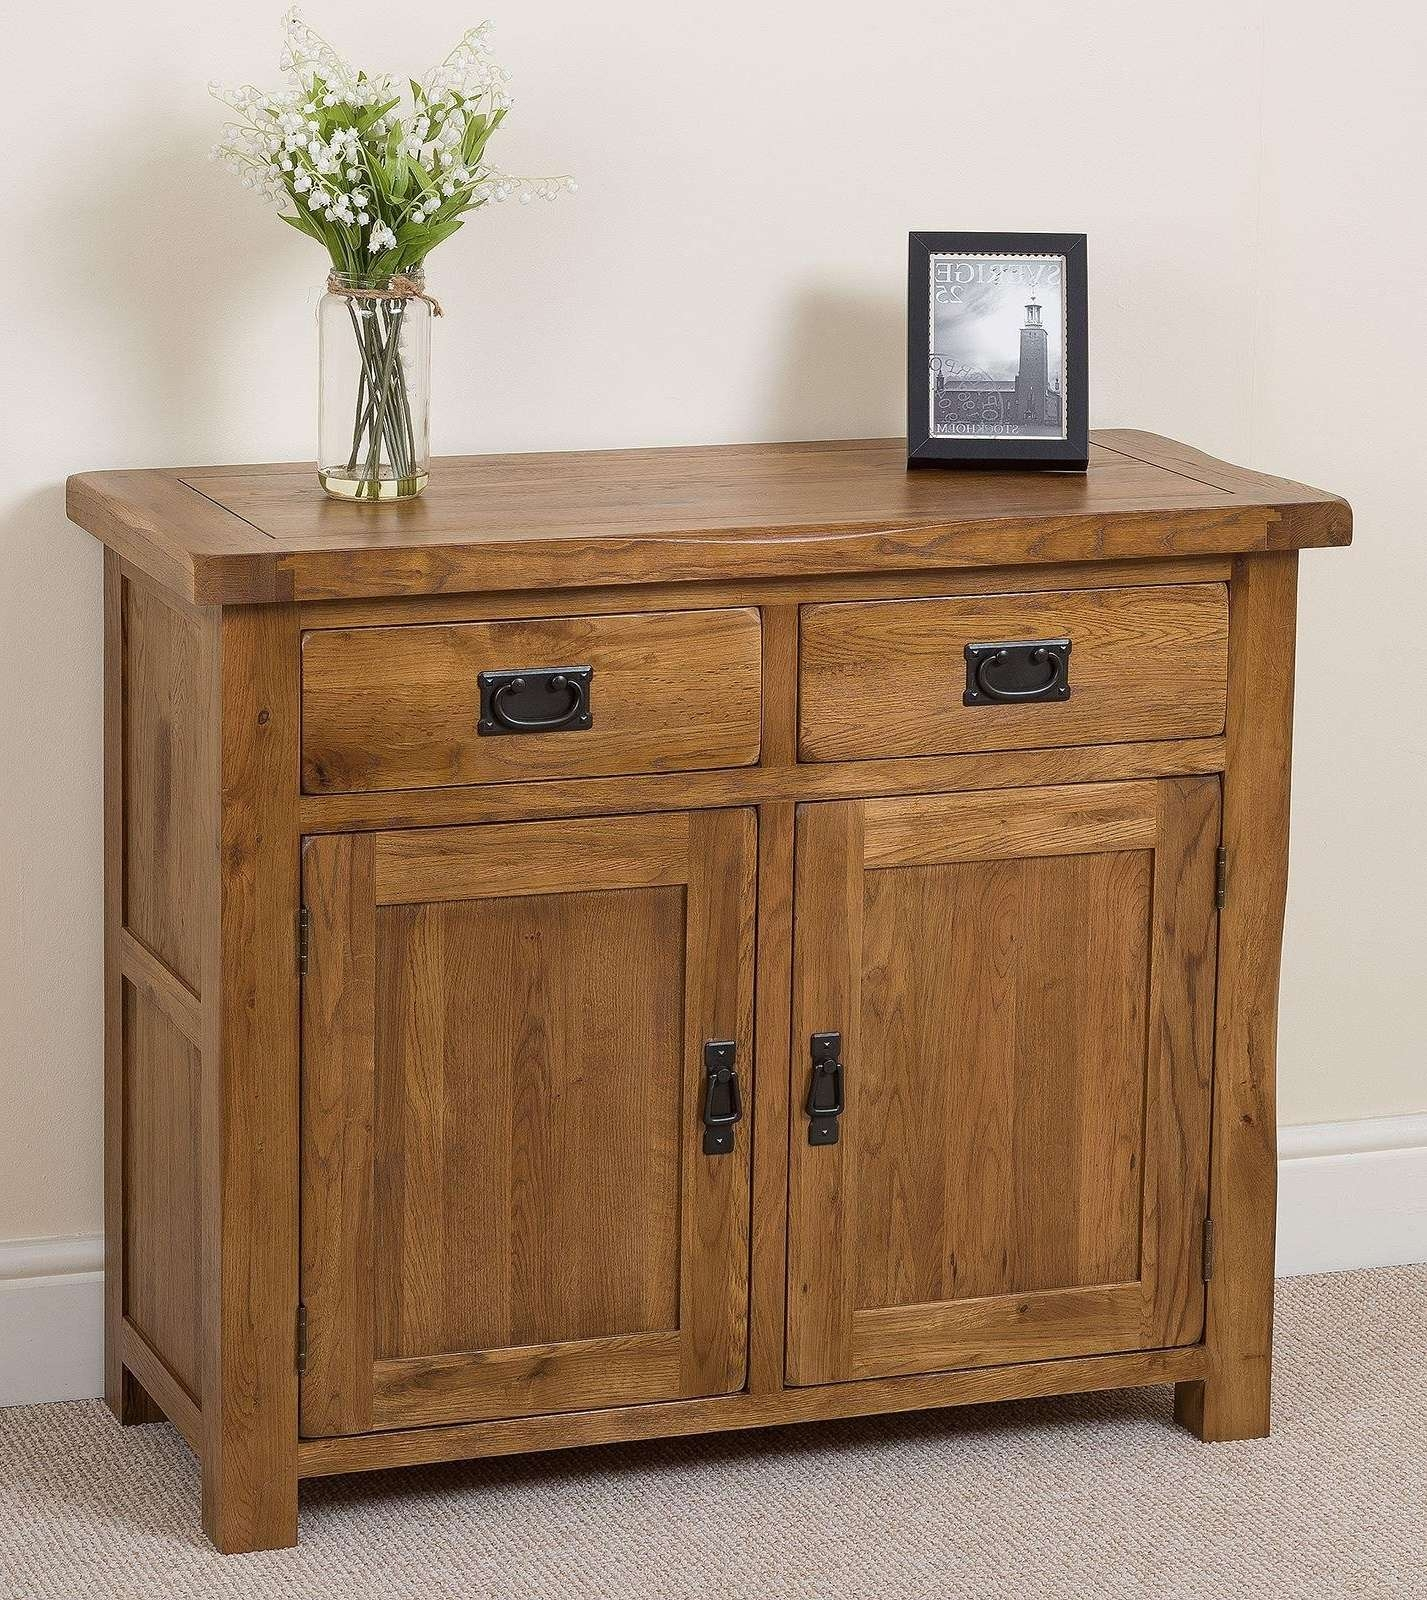 Rustic Sideboard Small : Rocket Uncle – Find The Harmony Rustic With Rustic Sideboards Furniture (View 14 of 20)